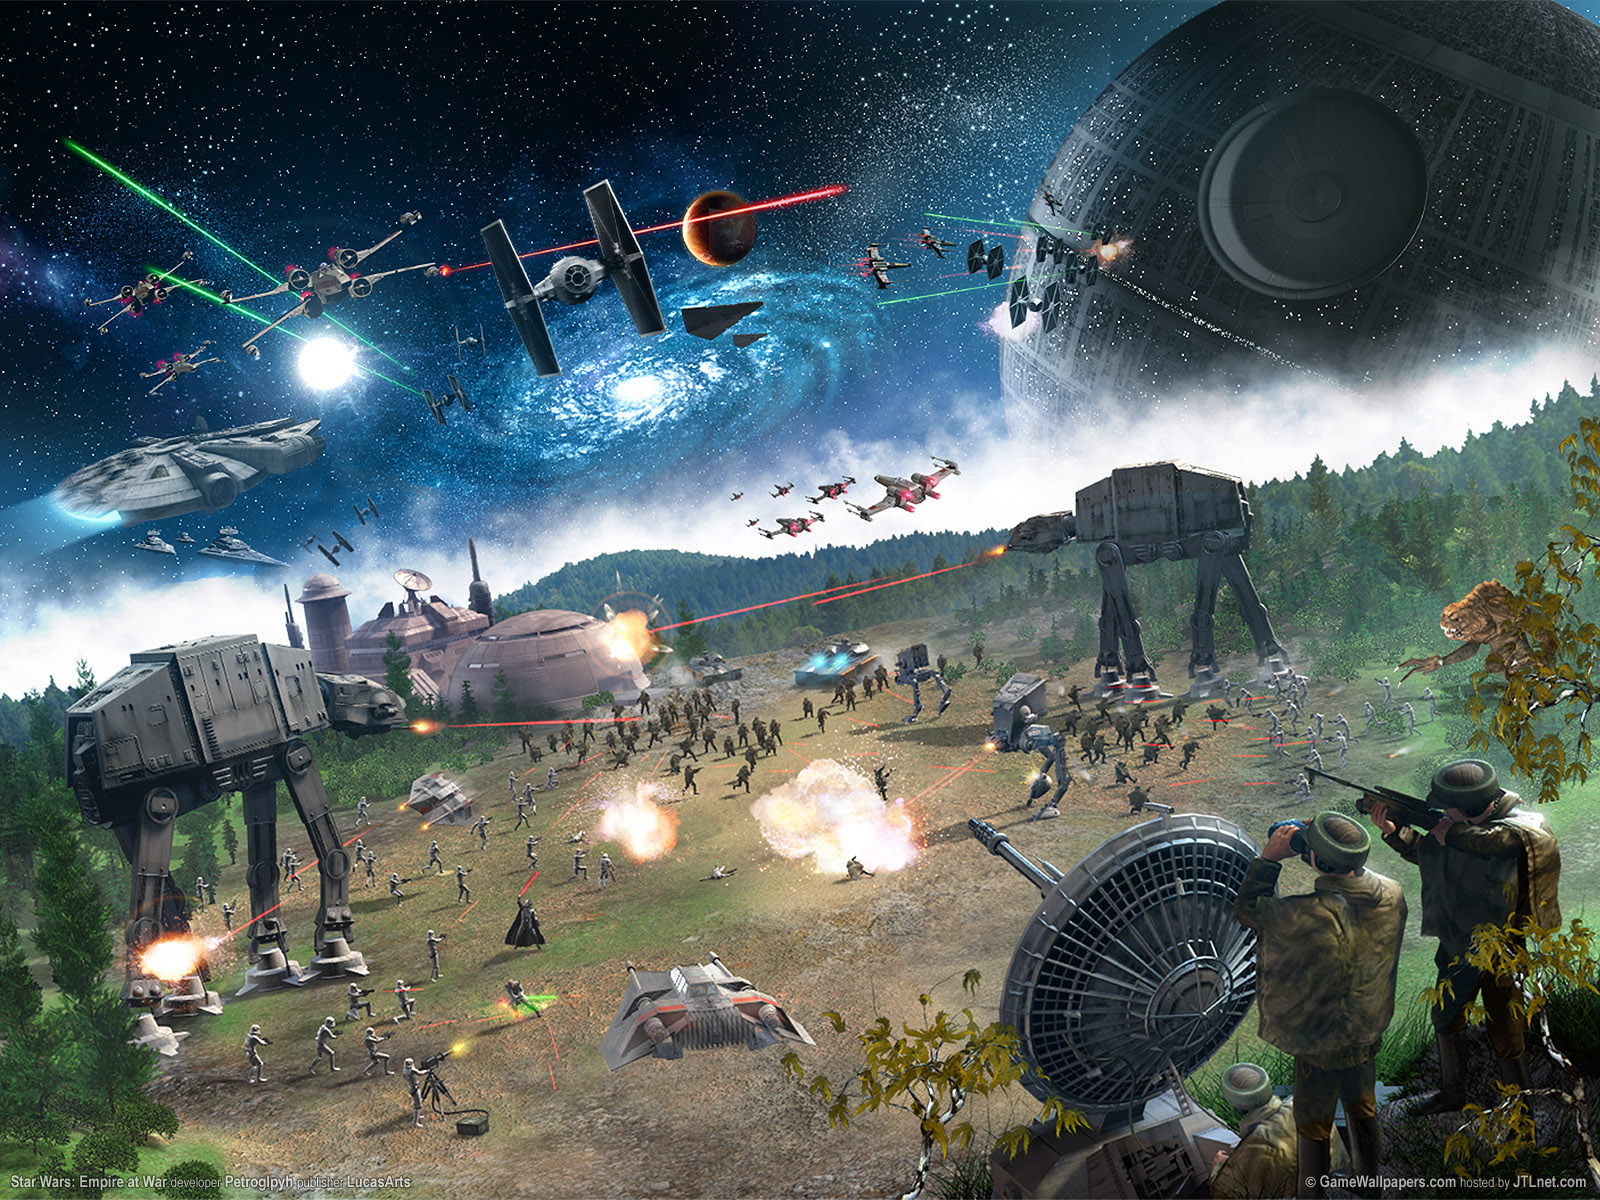 video game star wars empire at war x wing tie fighter at